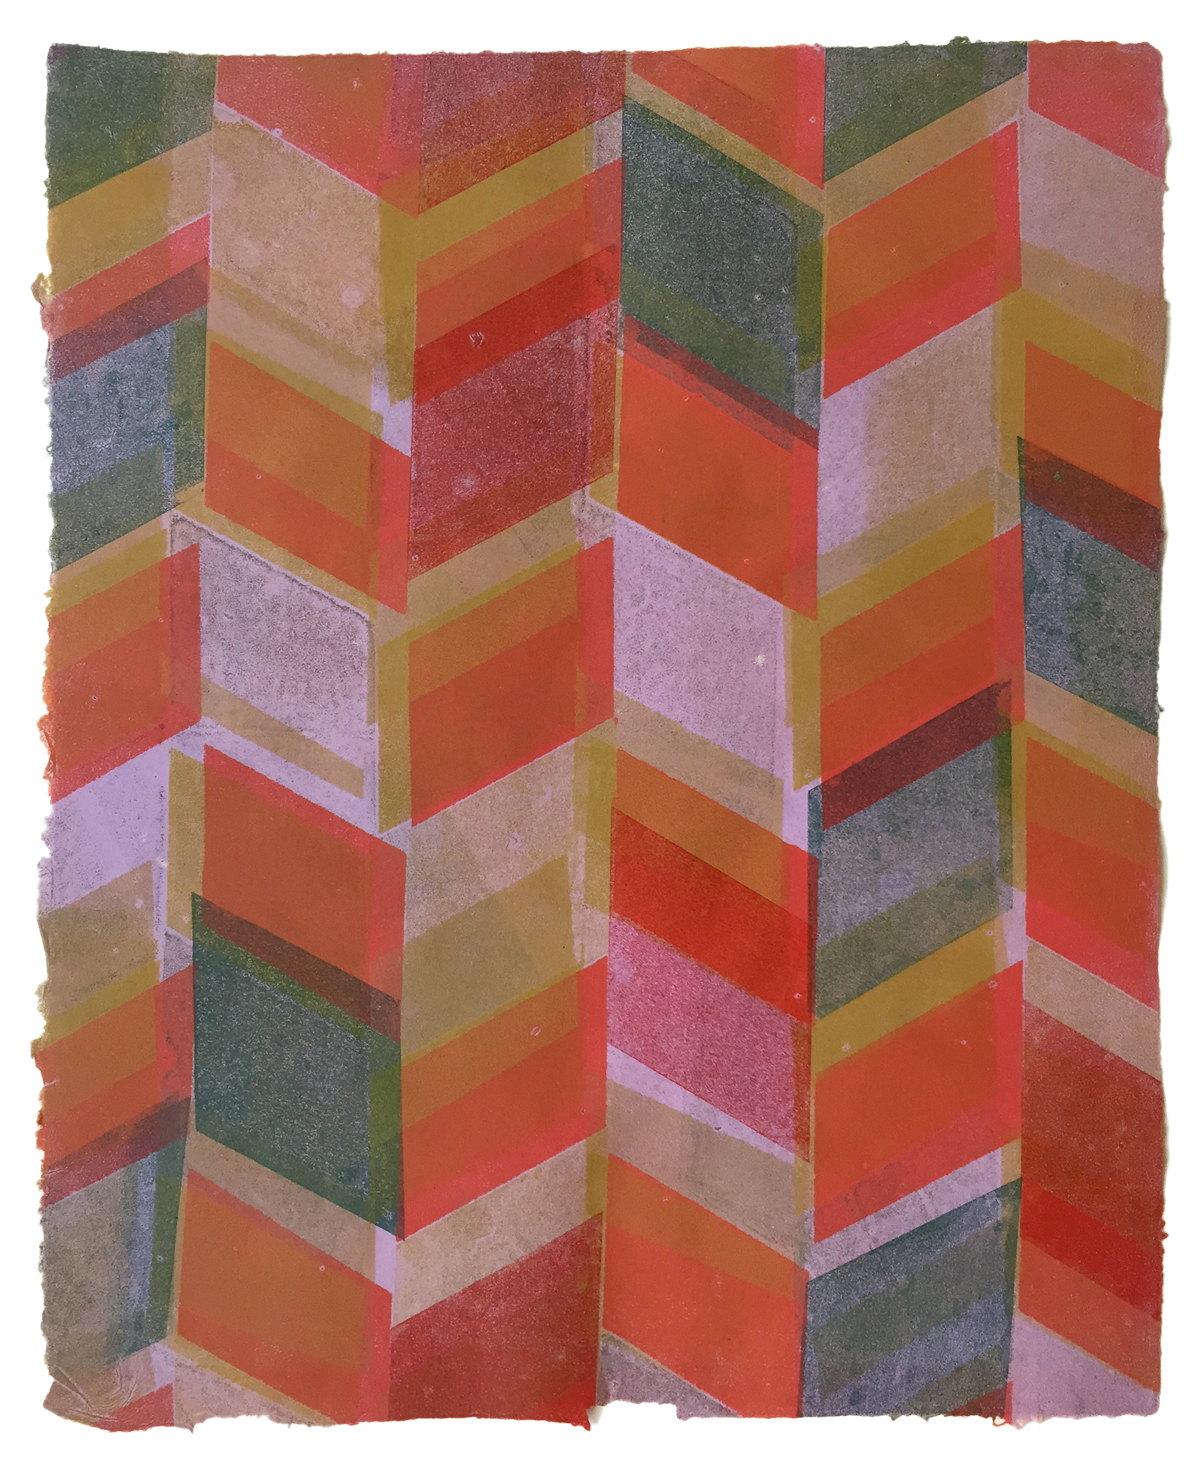 Katy G Collier,  Homage (Diamond Stripe for Ann) , Monotype on lavender paper made from quilts, 2018